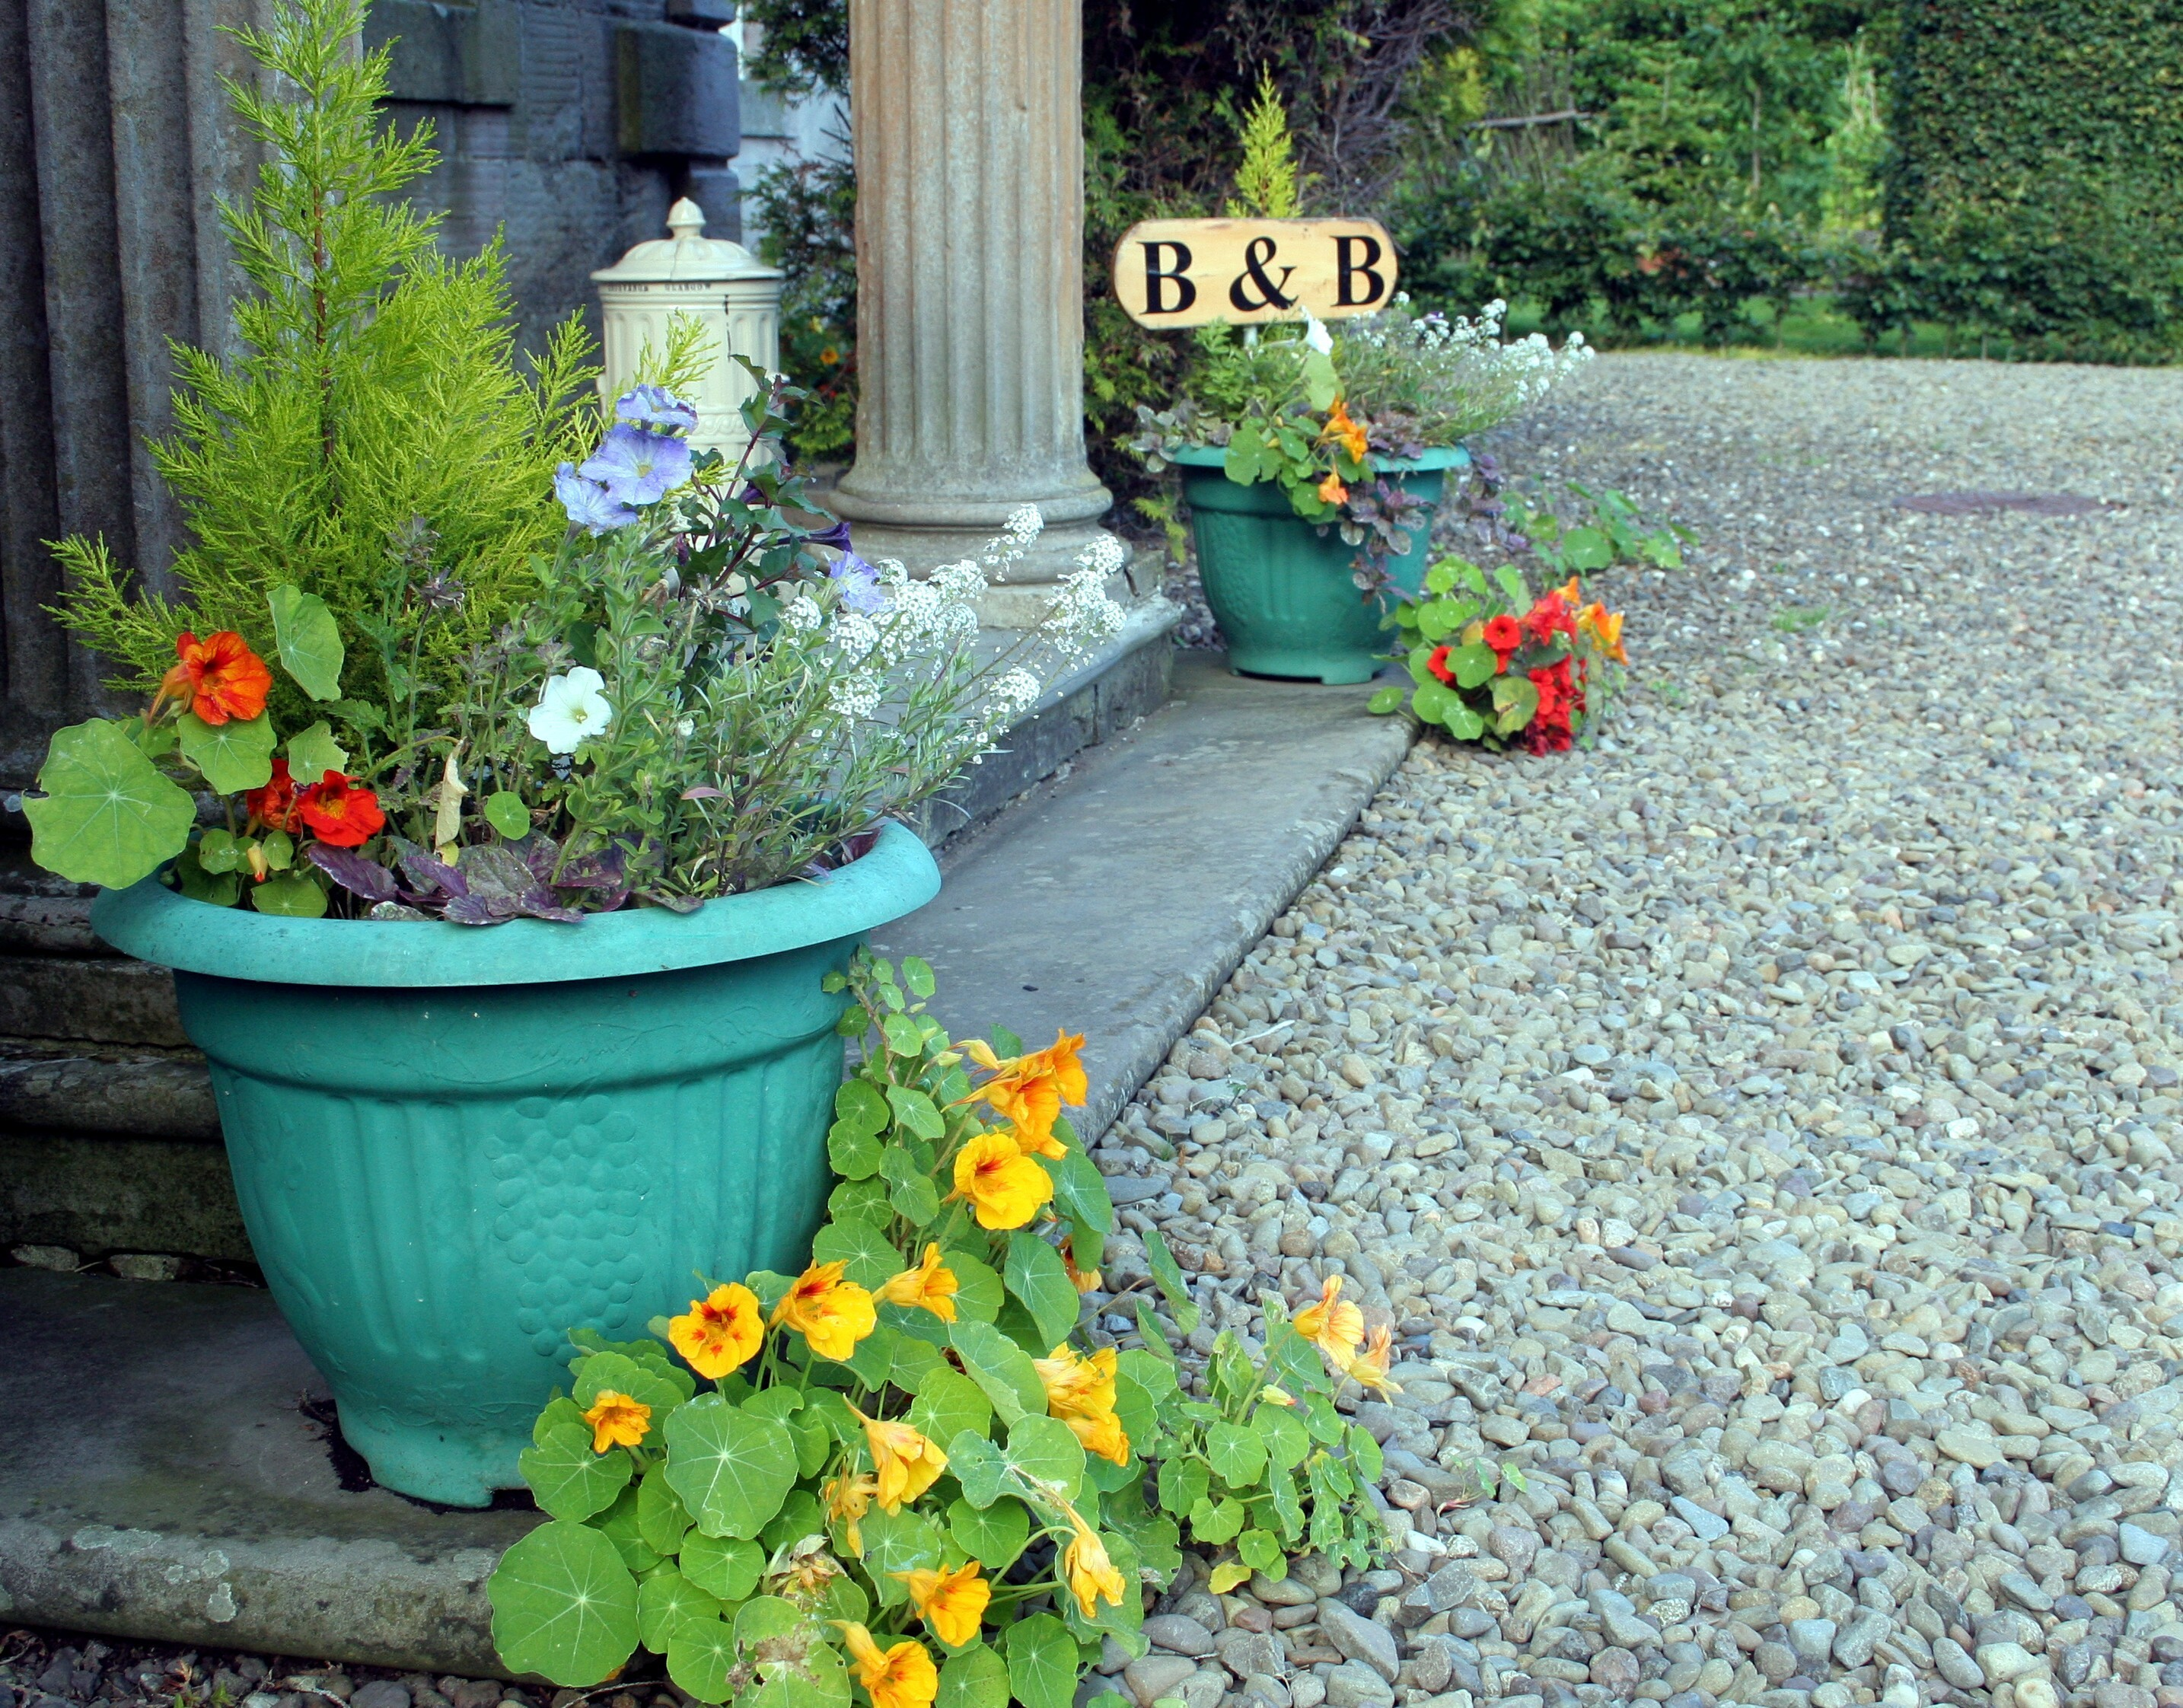 Dallars B&B Front Step & Bees